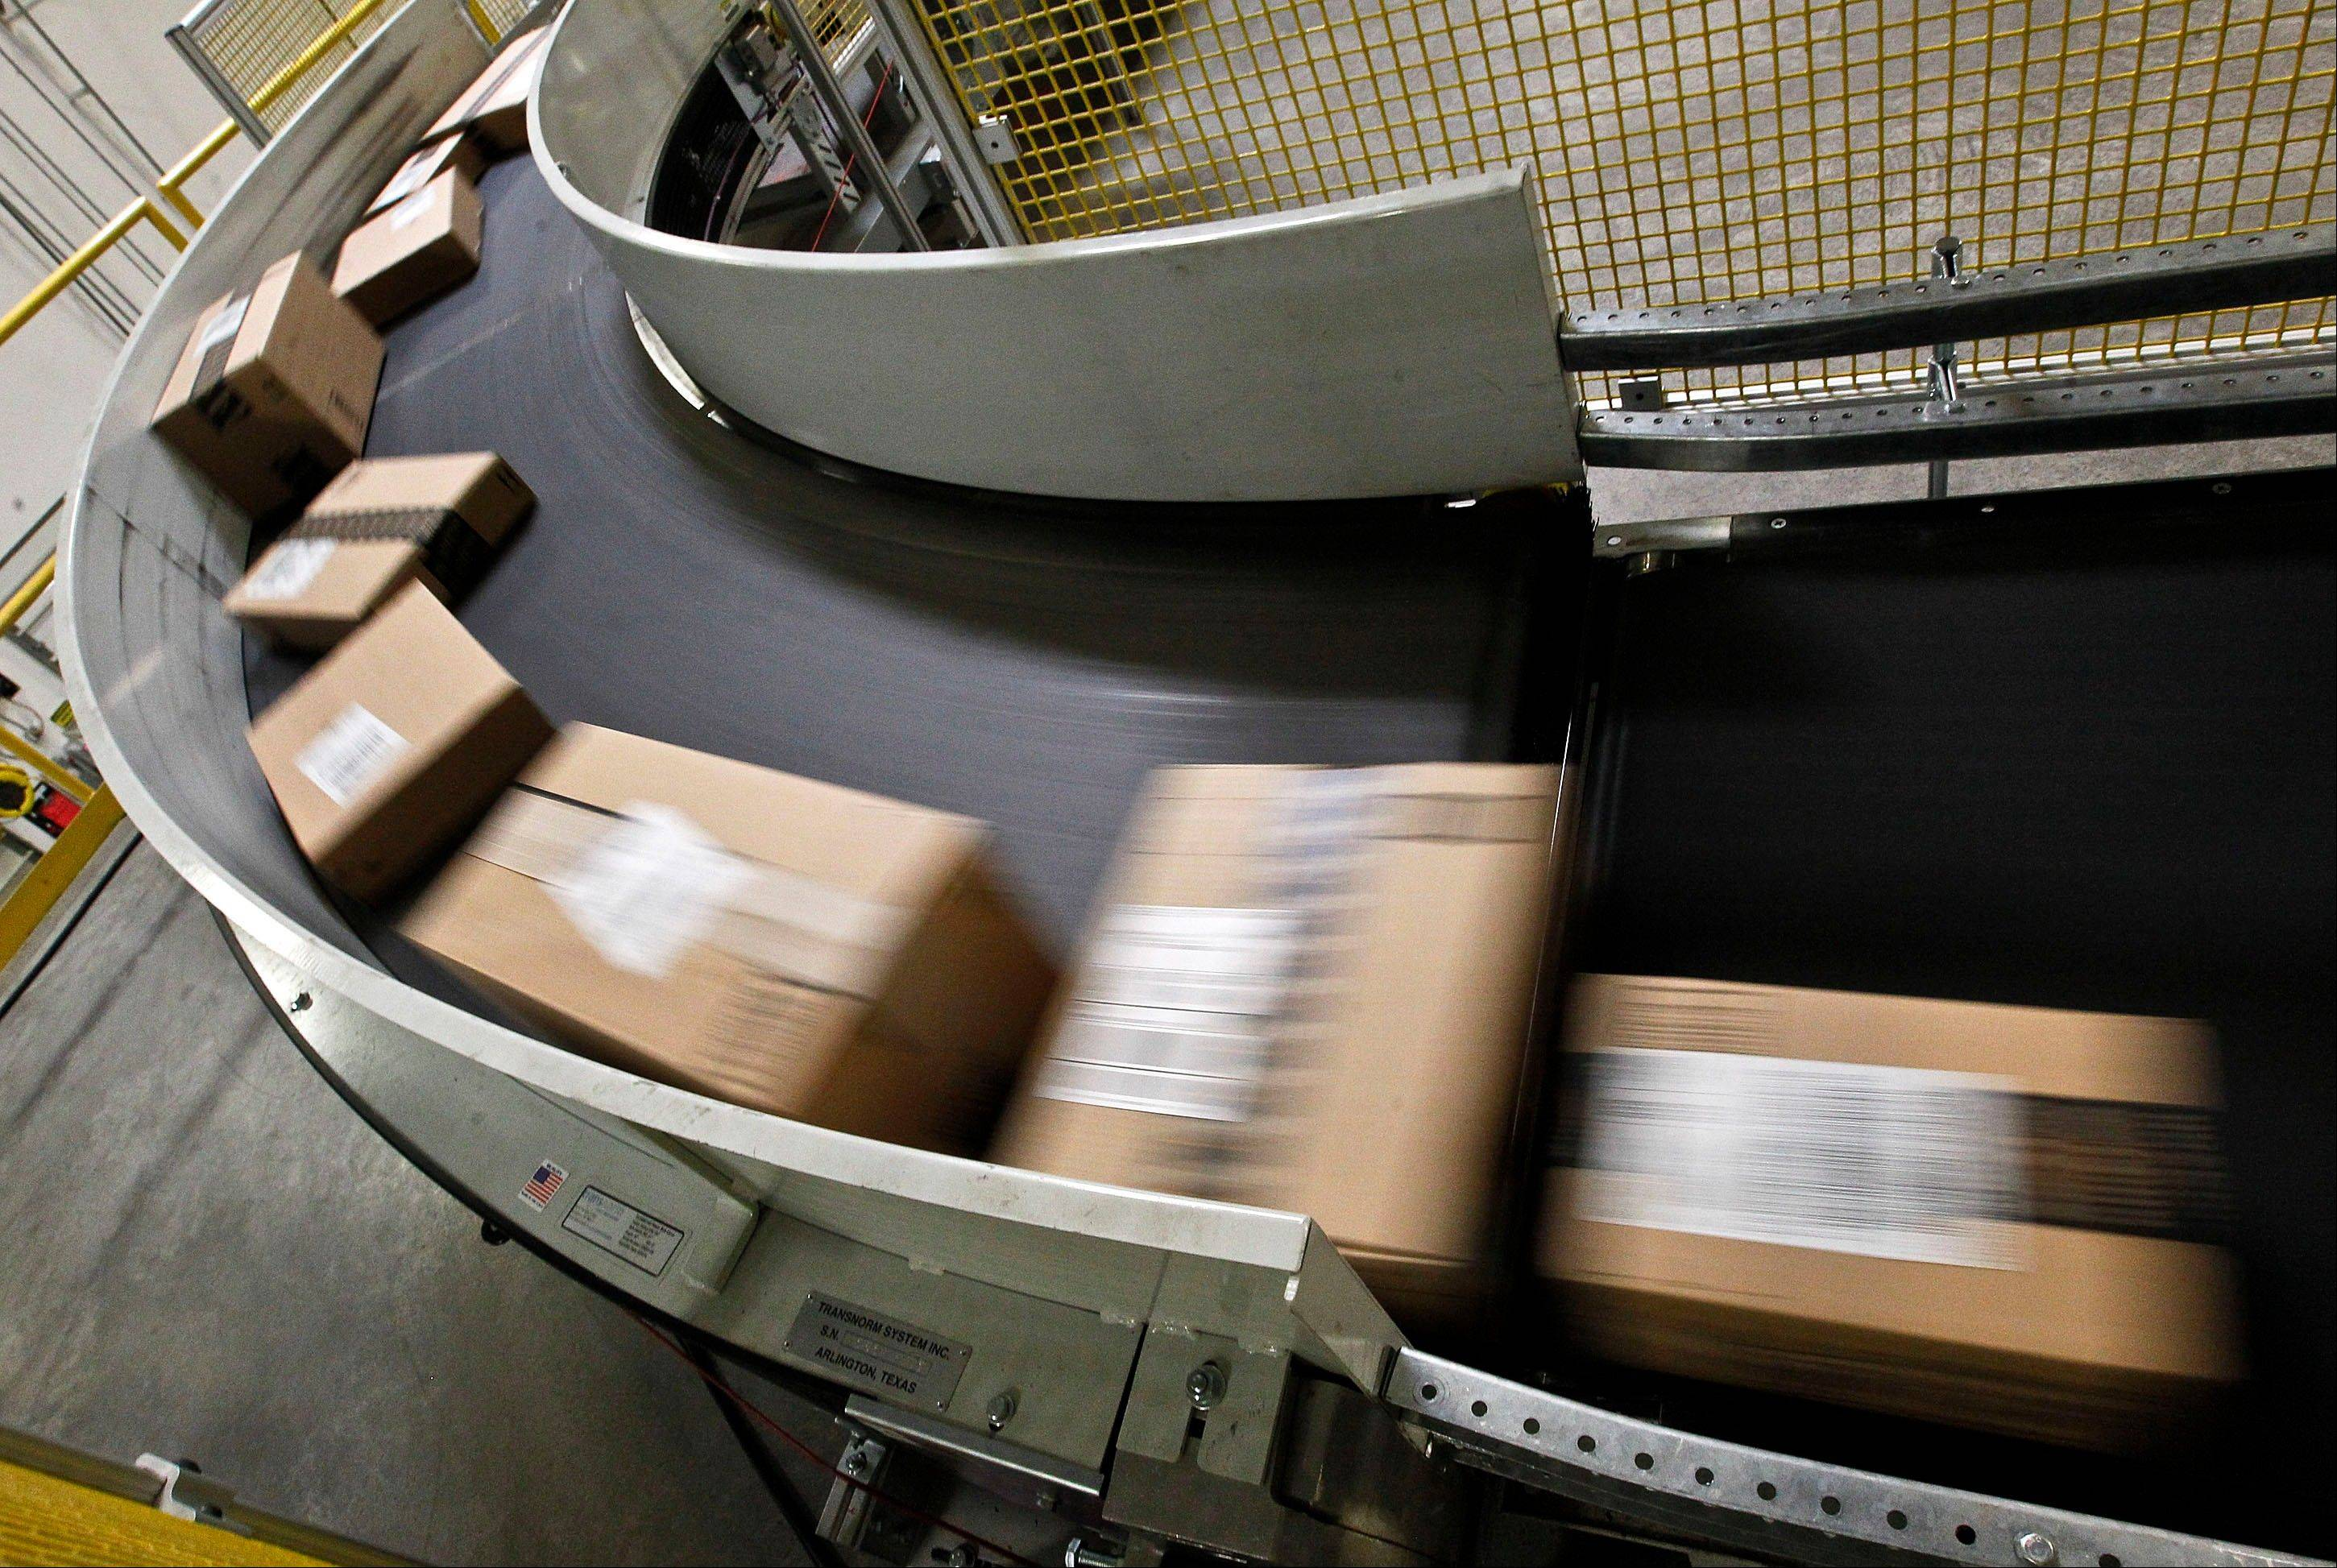 Packages are ready to ship move along a conveyor belt at the Amazon.com 1.2 million square foot fulfillment center, in Phoenix. Millions of shoppers are expected to click on items on Monday, Dec. 2, 2013, as retailers rev up deals to grab online holiday shopping dollars on the first working day after the busy holiday weekend.